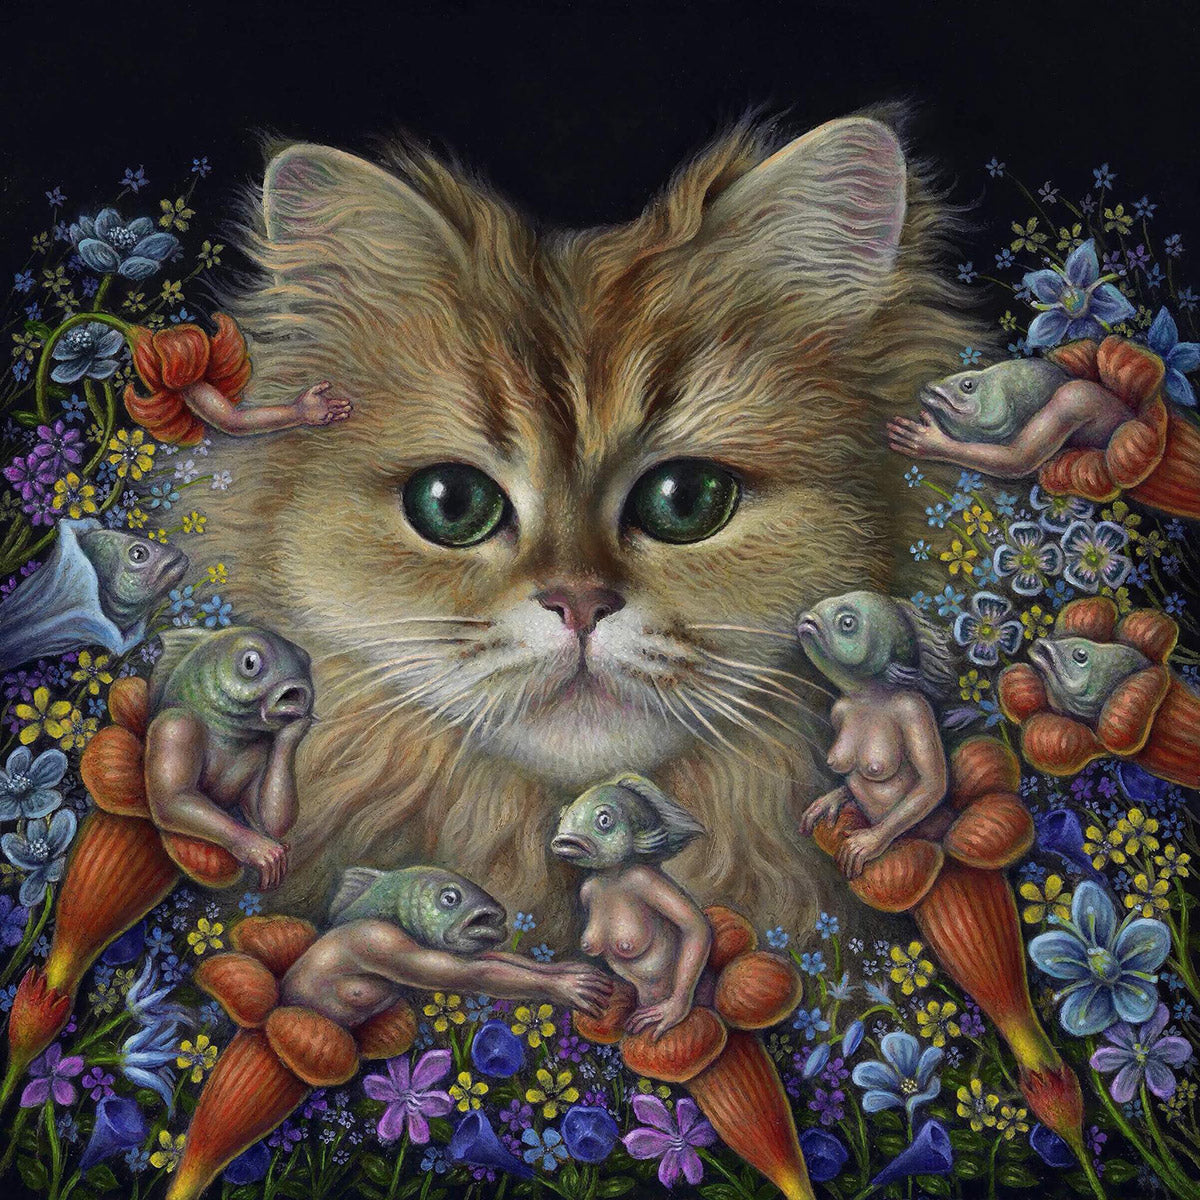 Jon Beinart's oil painting, There's Something in the Milk